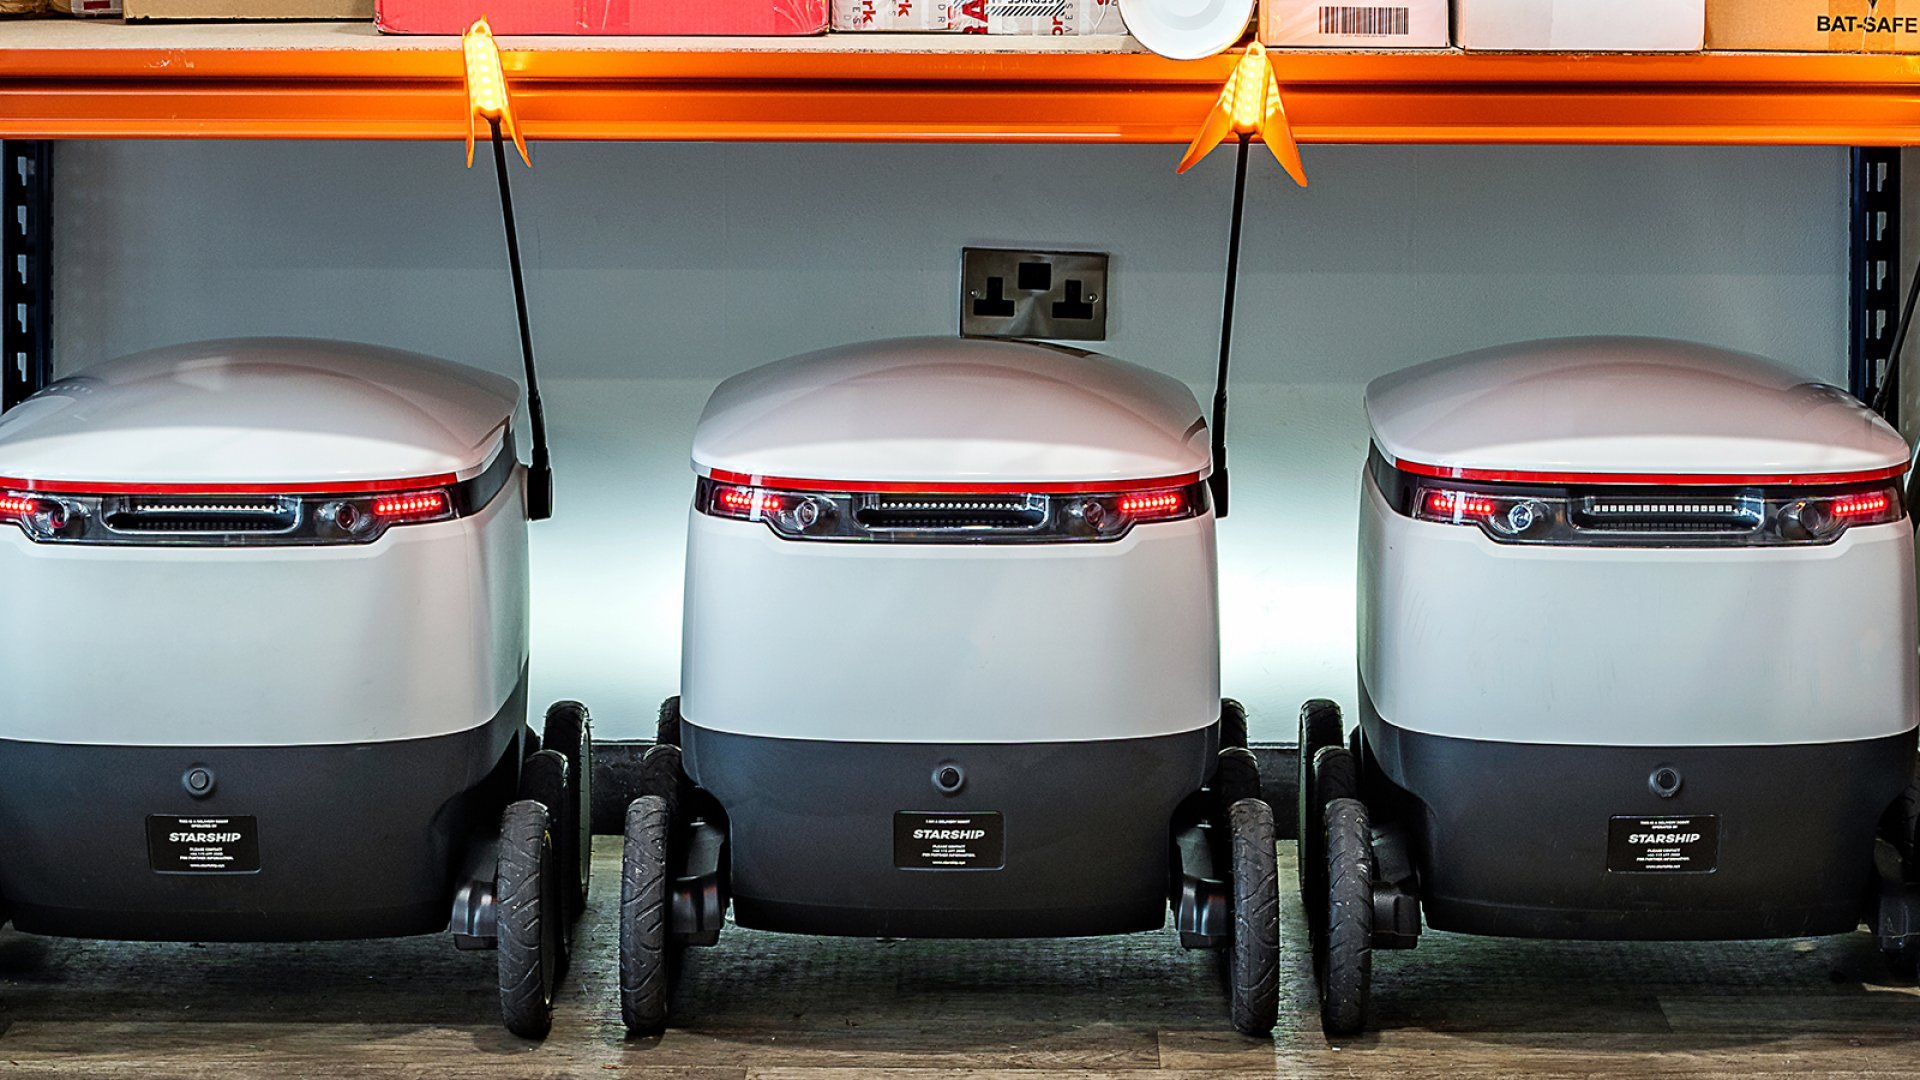 Lots of Companies Are Trying to Deliver Packages More Efficiently. This Startup Is Betting Its Tiny, 4-MPH Robots Will Win